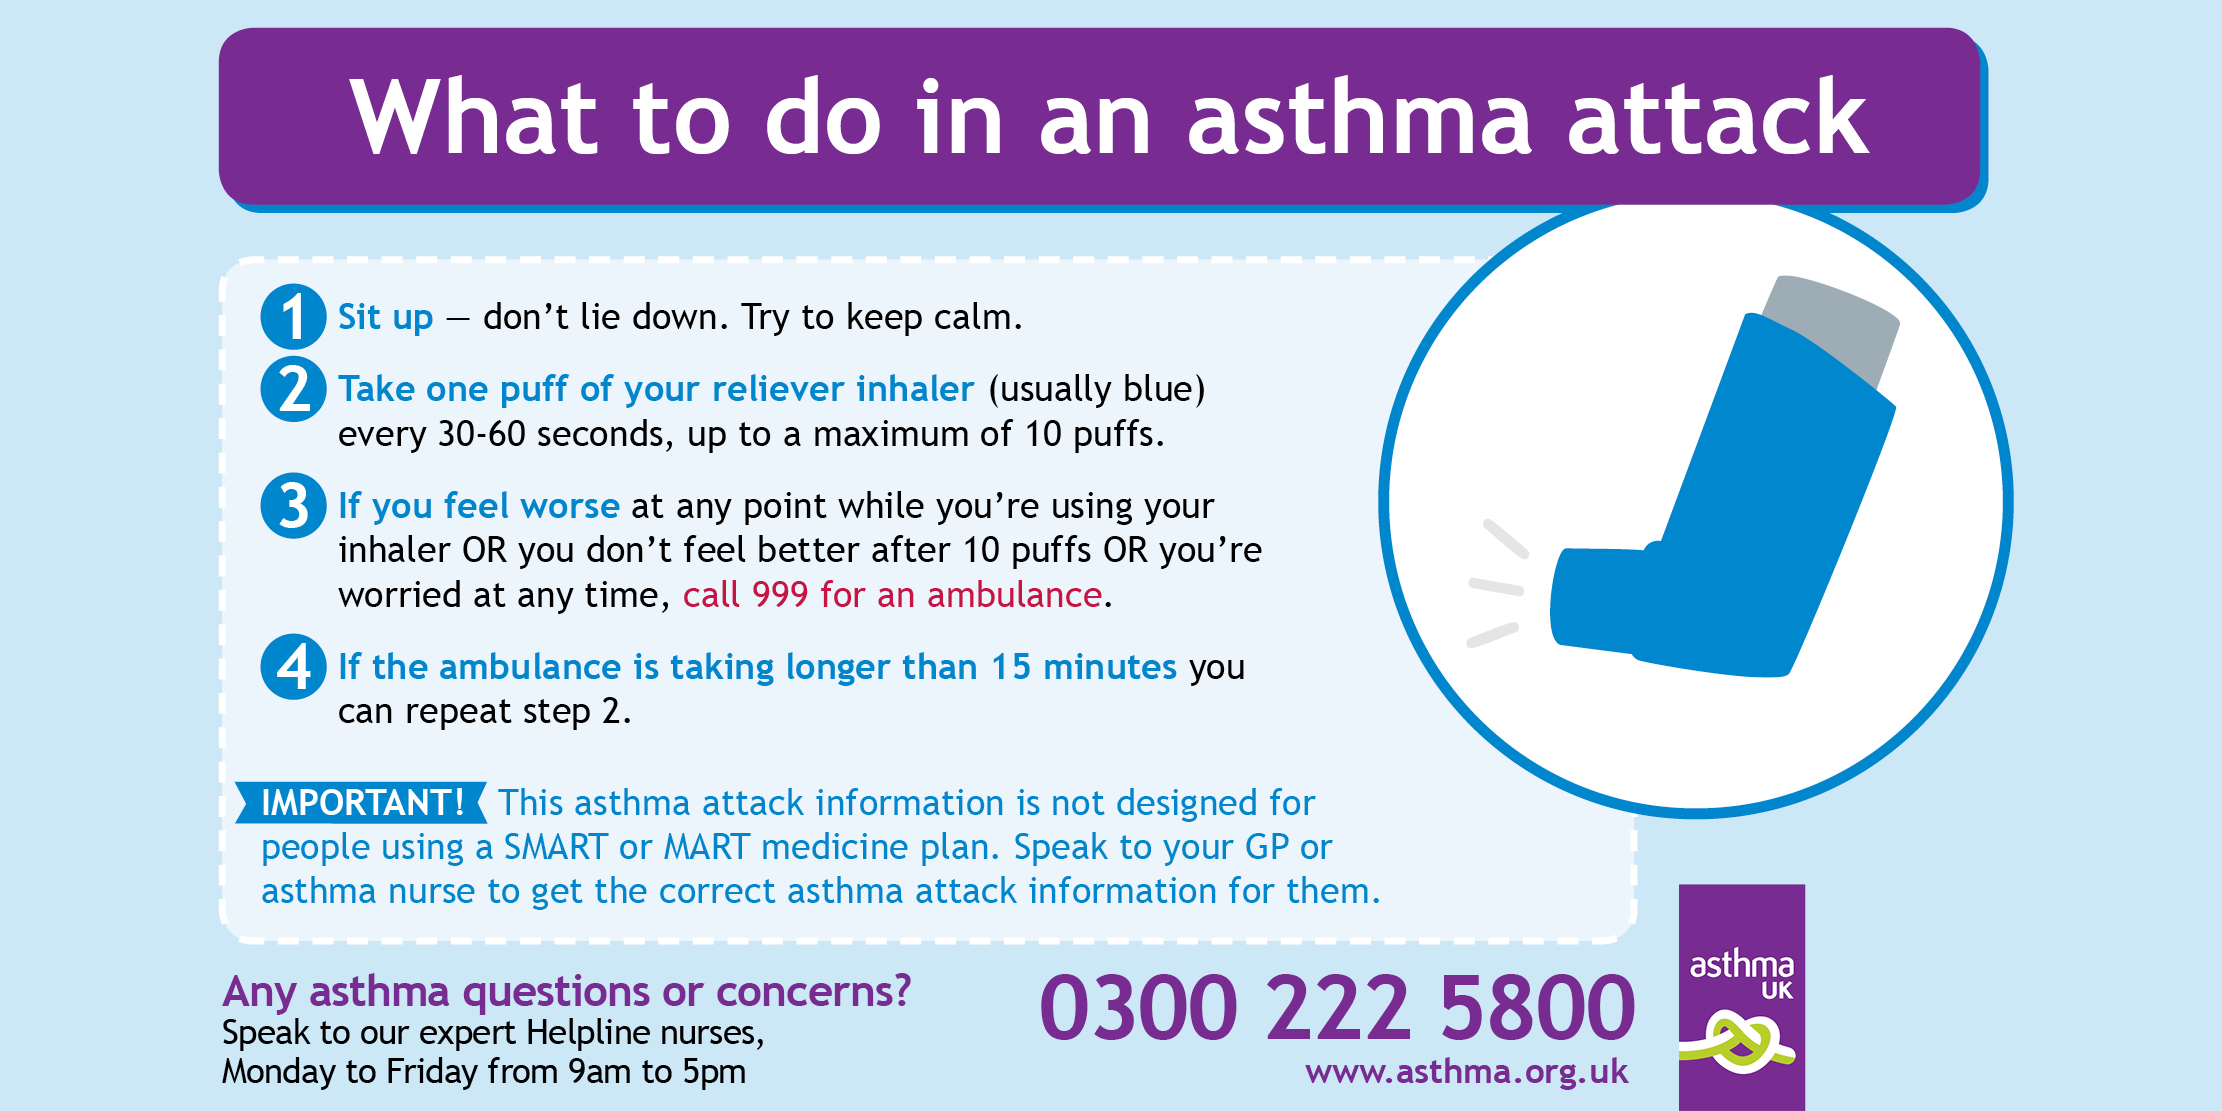 child asthma - what to do